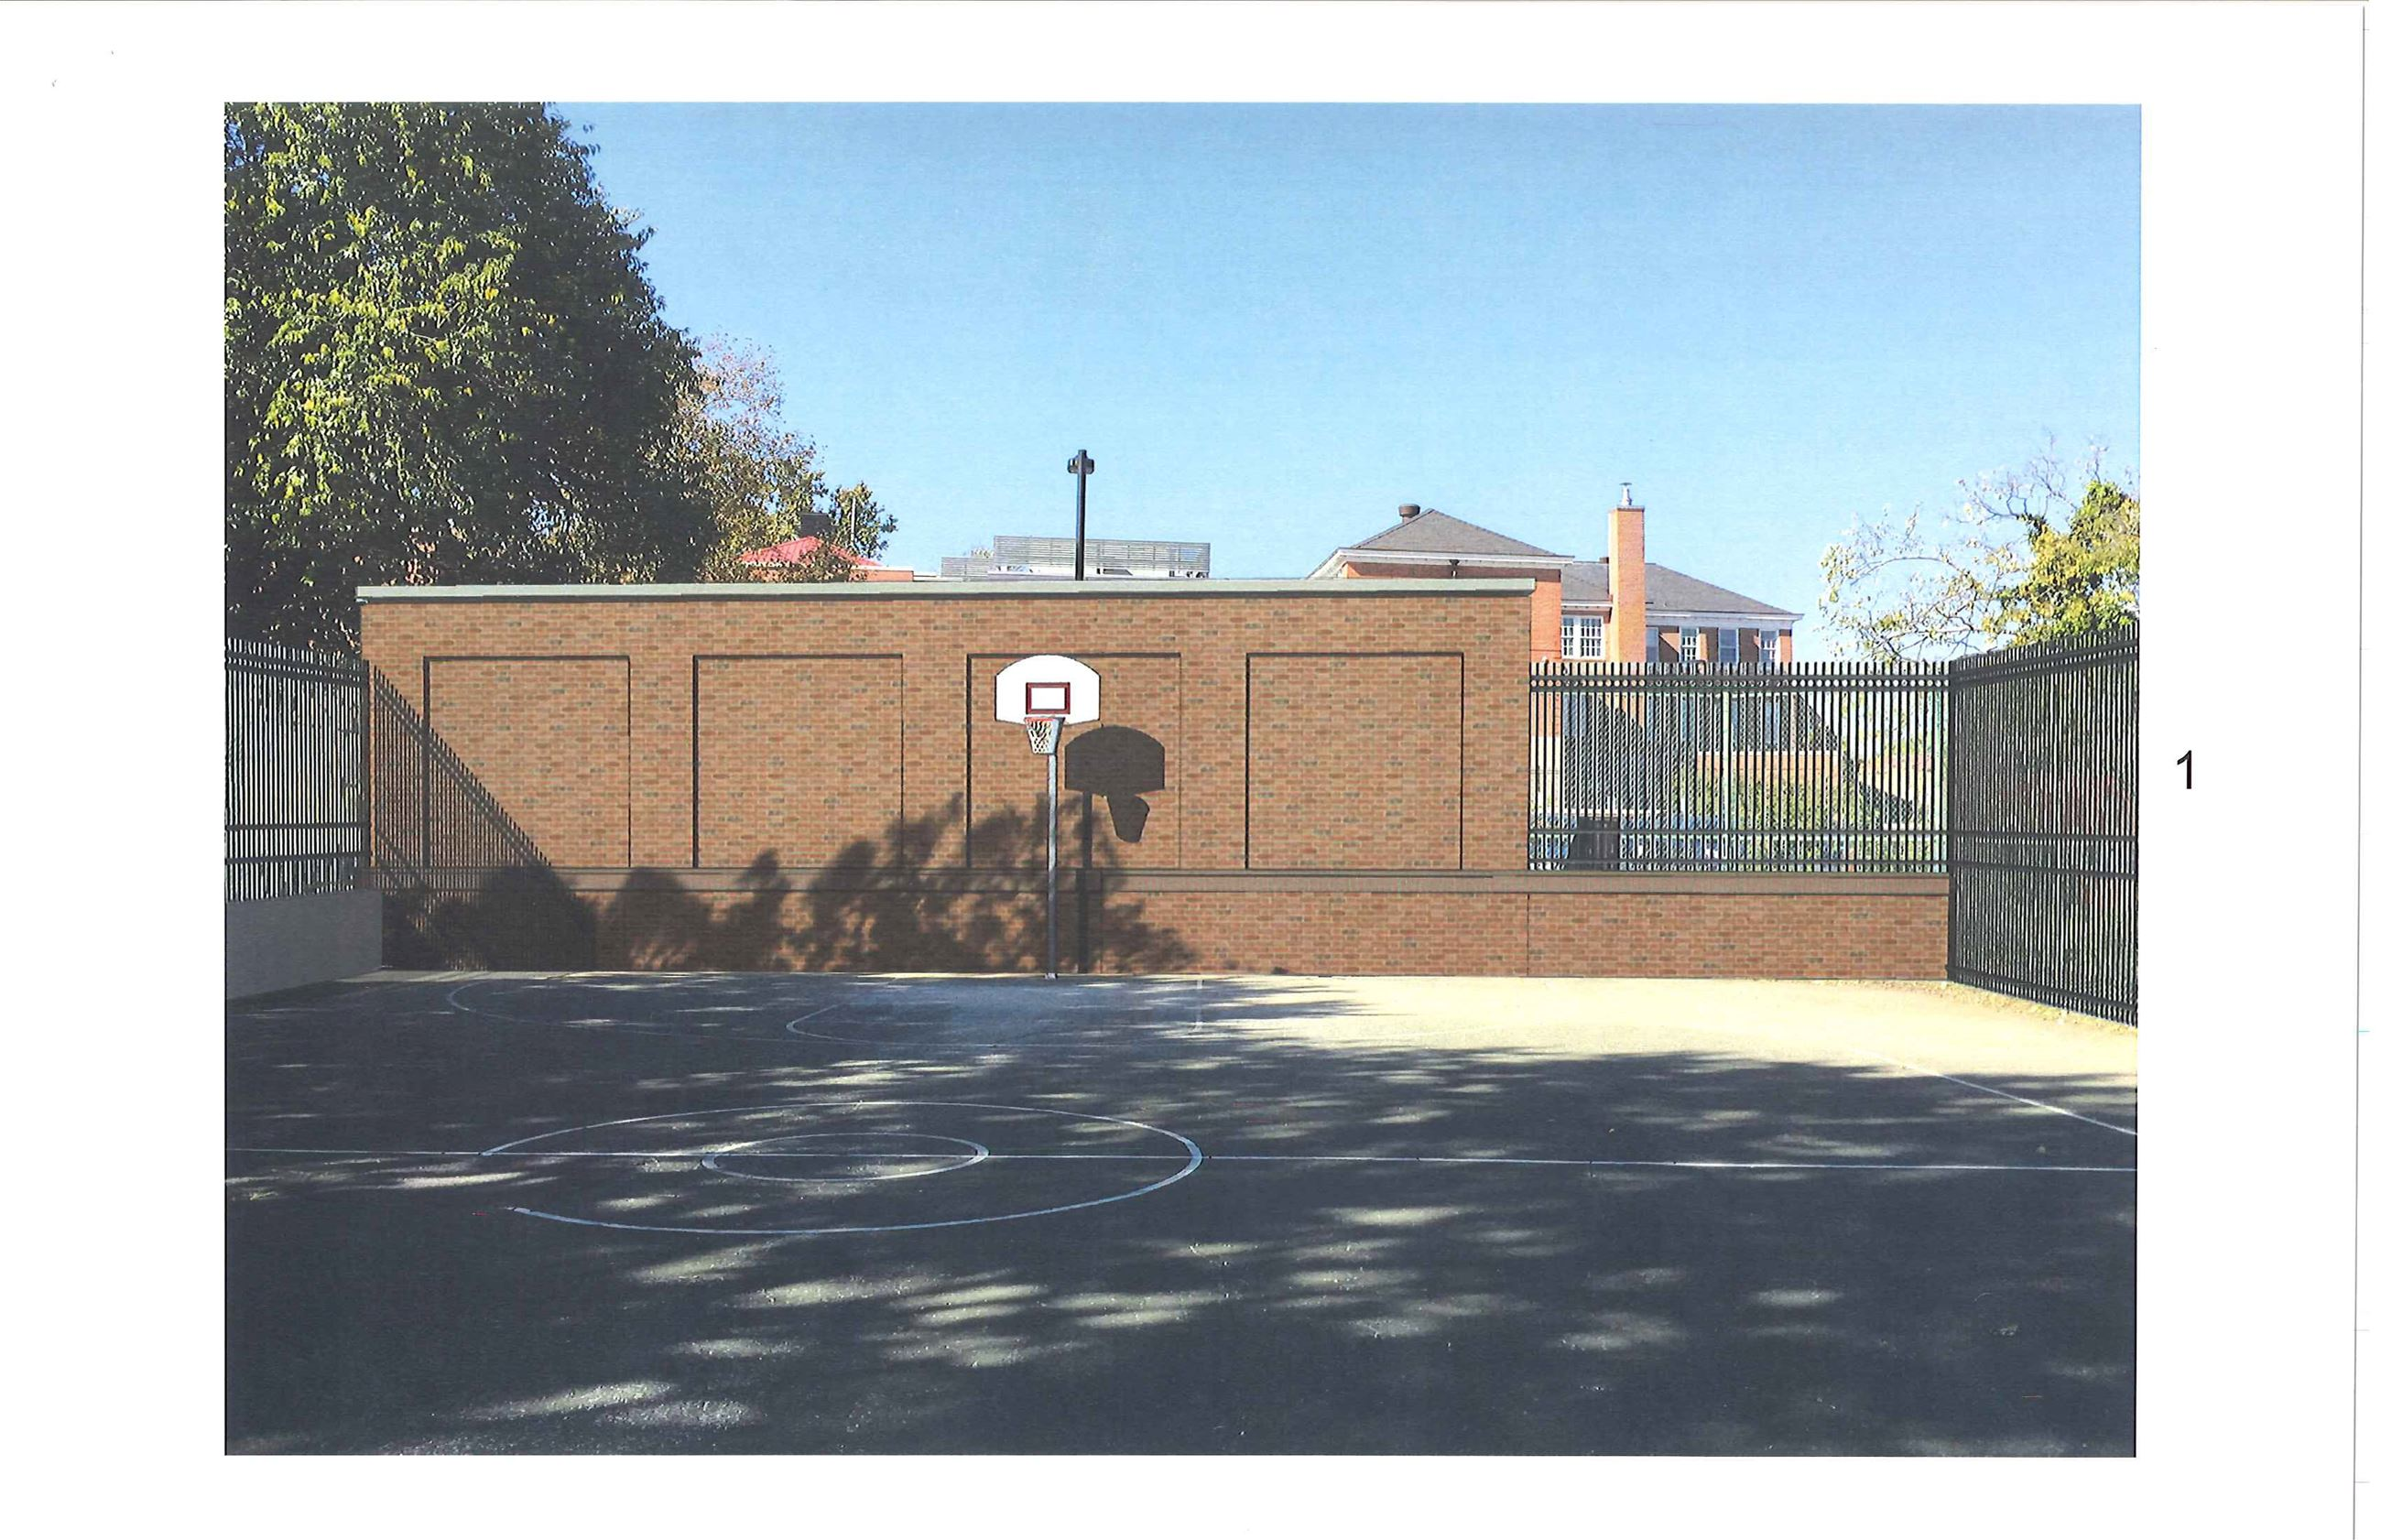 Proposed Pump Station Elevation from Bball Court 20181126